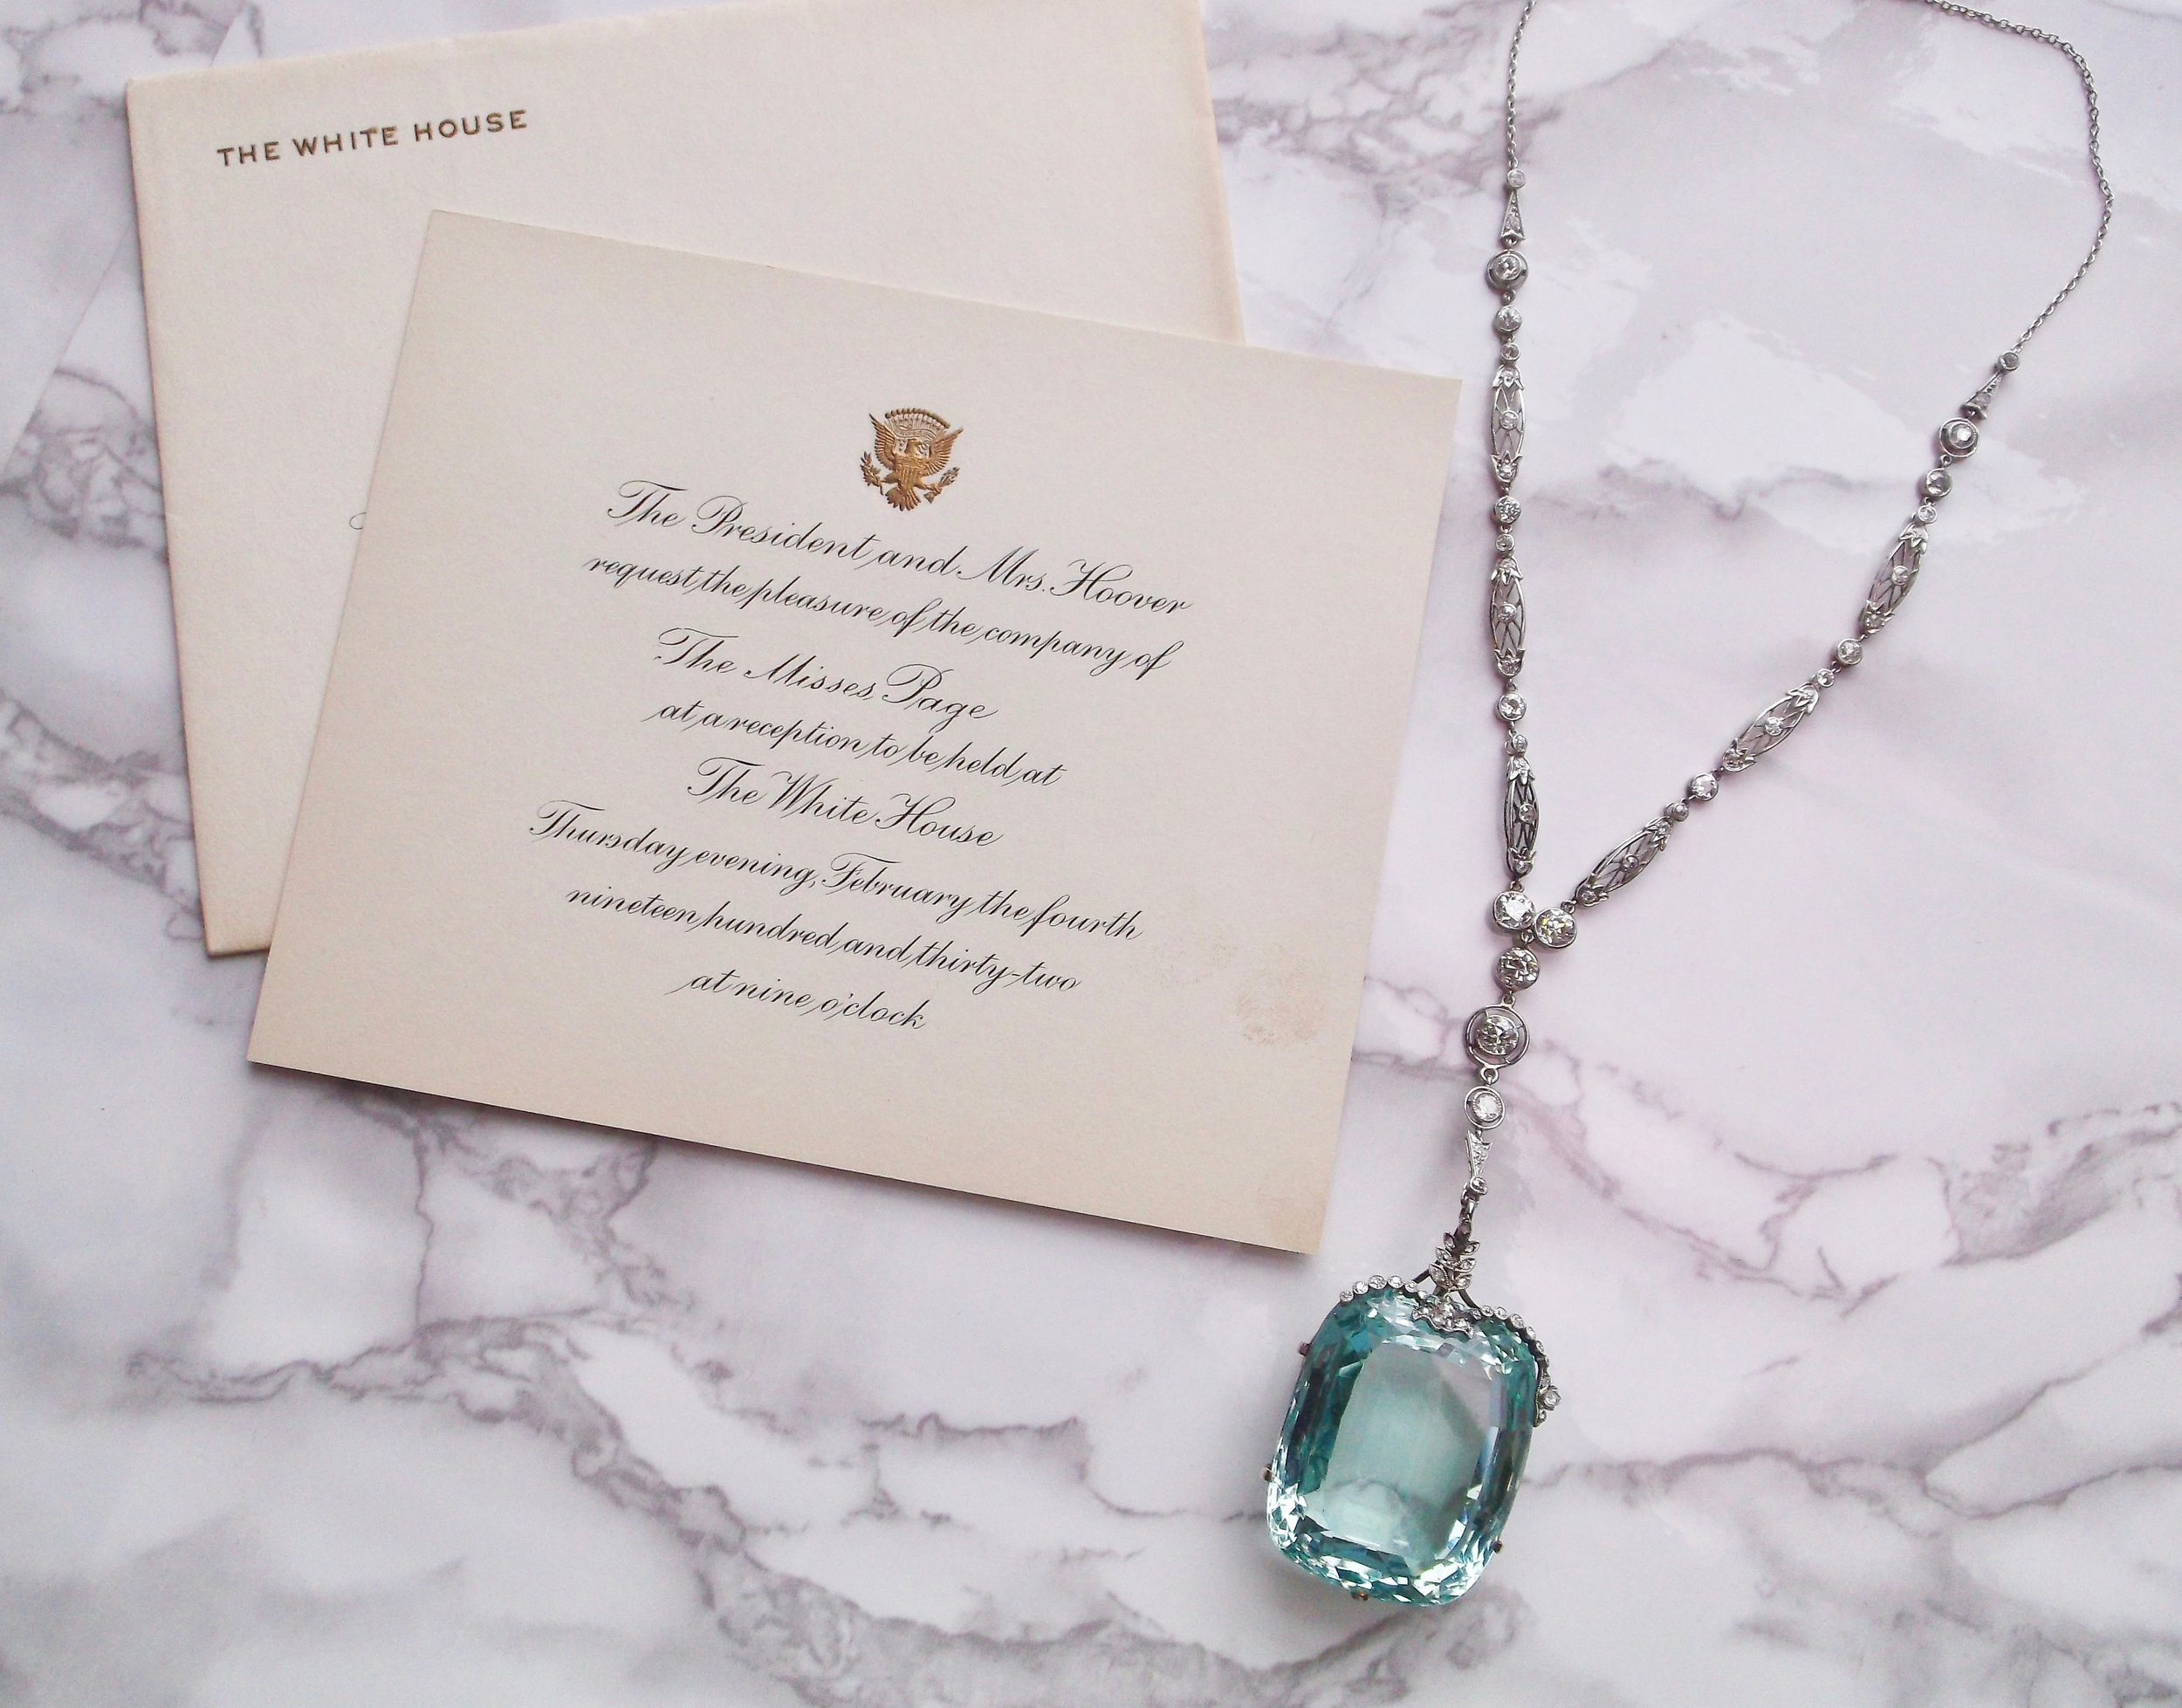 "Meet Miss Page.   This jaw droping-ly gorgeous 180 carat aquamarine, diamond and platinum necklace has been to the White House! This beauty was worn by Miss Page in 1932 to a White House dinner hosted by President Hoover and First Lady Hoover.  The invitation reads:  ""The President and Mrs. Hoover request the pleasure of the company of The Misses Page at a reception to be held at The White House Thursday evening, February the fourth nineteen hundred and thirty-two at nine o'clock.""   This stunning piece can be yours (to wear to The White House, or, you know, just with your pj's on the couch!)! Shop  HERE"